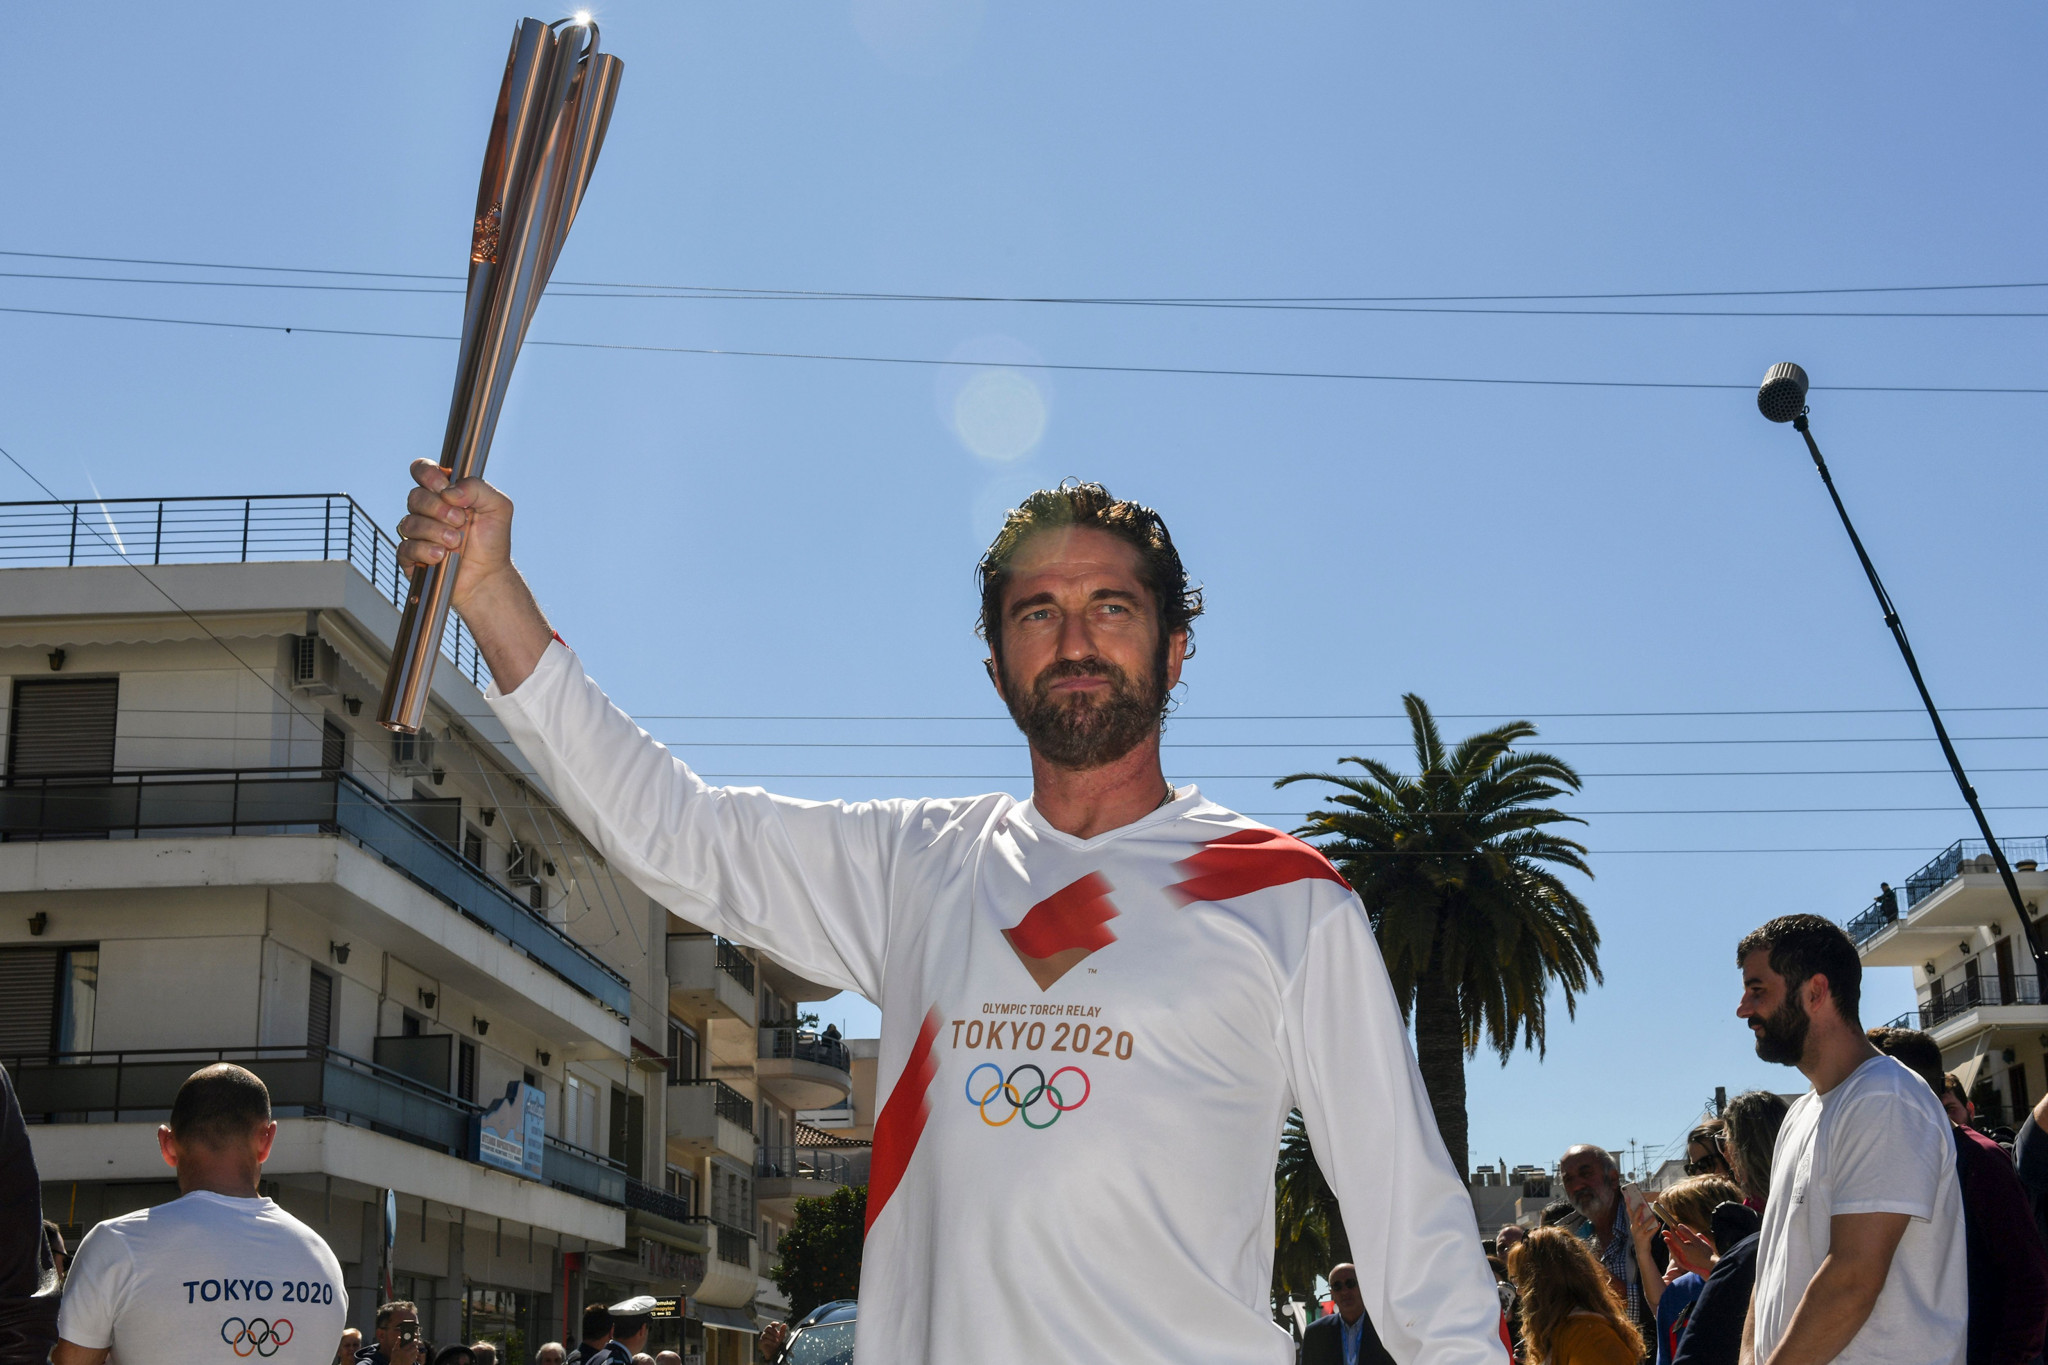 The Tokyo 2020 Torch Relay was suspended on its first full day in March 2020 when crowds gathered in Sparta, Greece, to see actor Gerard Butler carry the Flame ©Getty Images